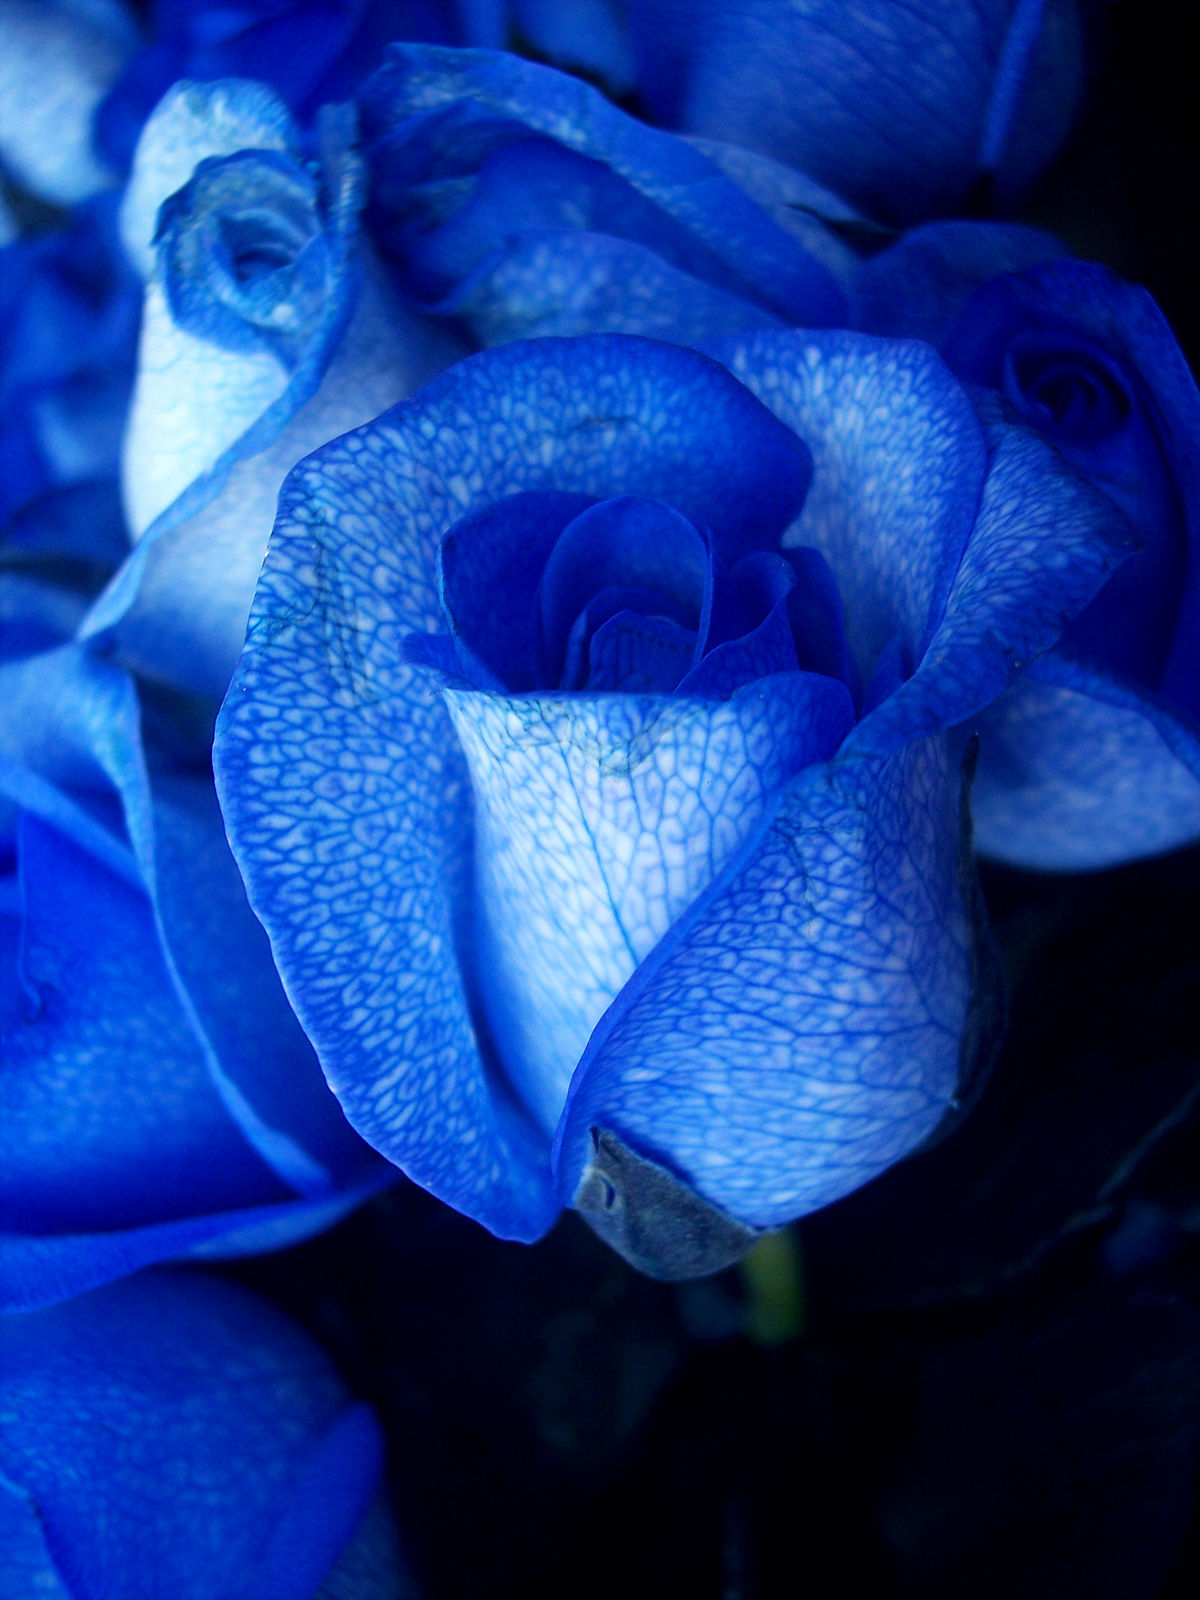 Blue rose photo